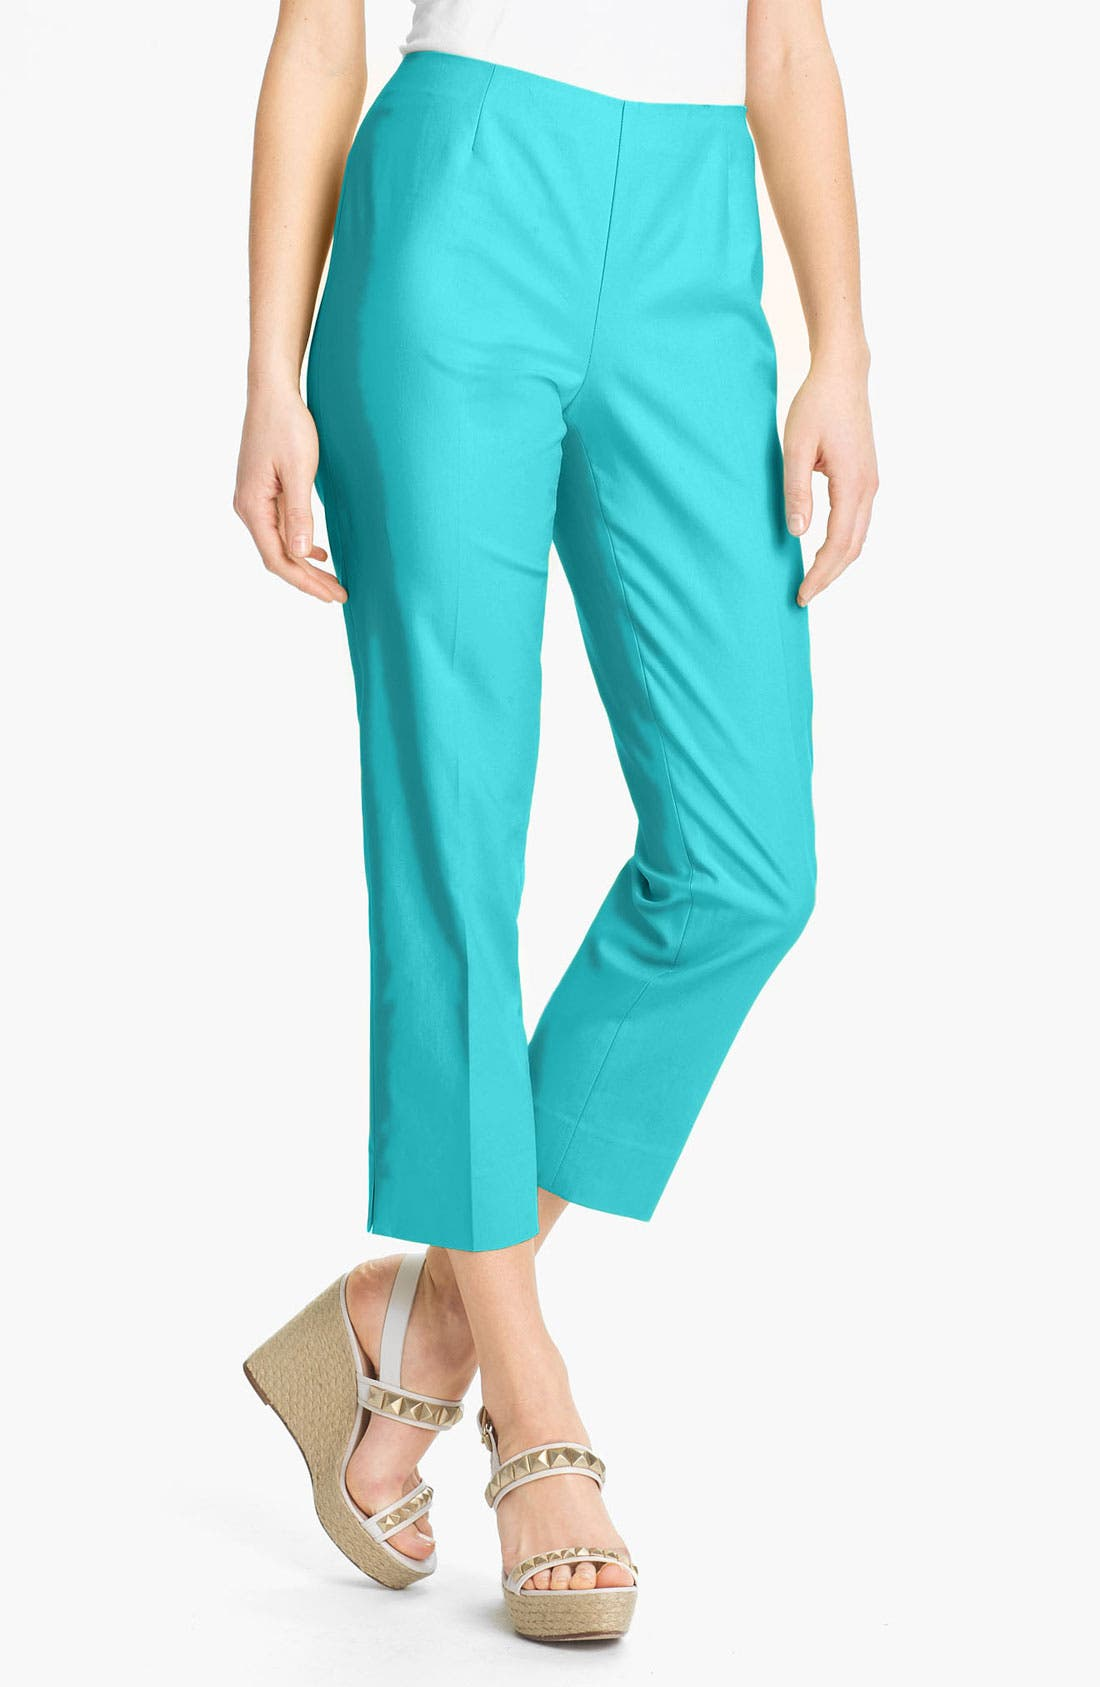 Alternate Image 1 Selected - Lafayette 148 New York 'Bleecker' Crop Pants